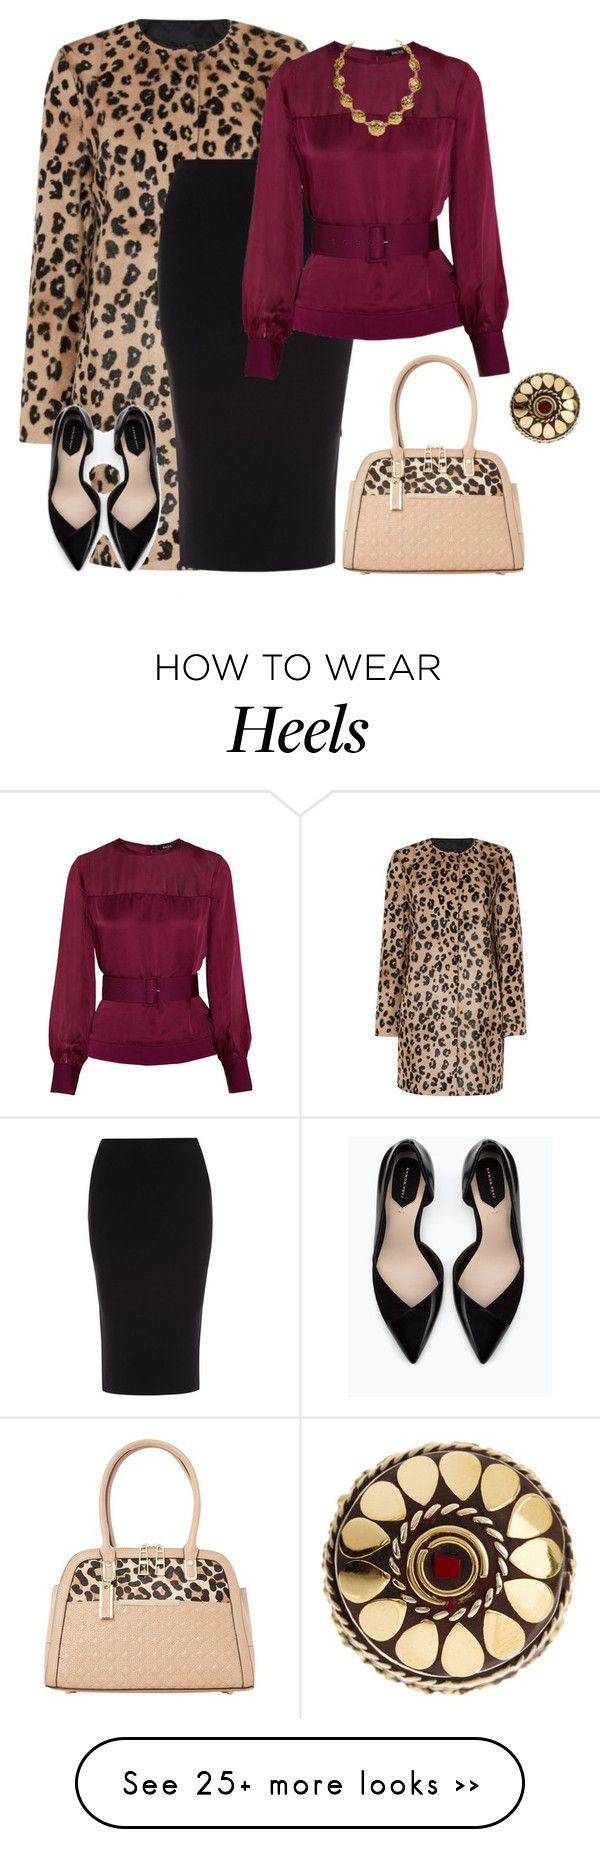 """""""outfit 2414"""" by natalyag on Polyvore featuring MaxMara, Roland Mouret, Raoul, Zara, Dune and Rituals"""